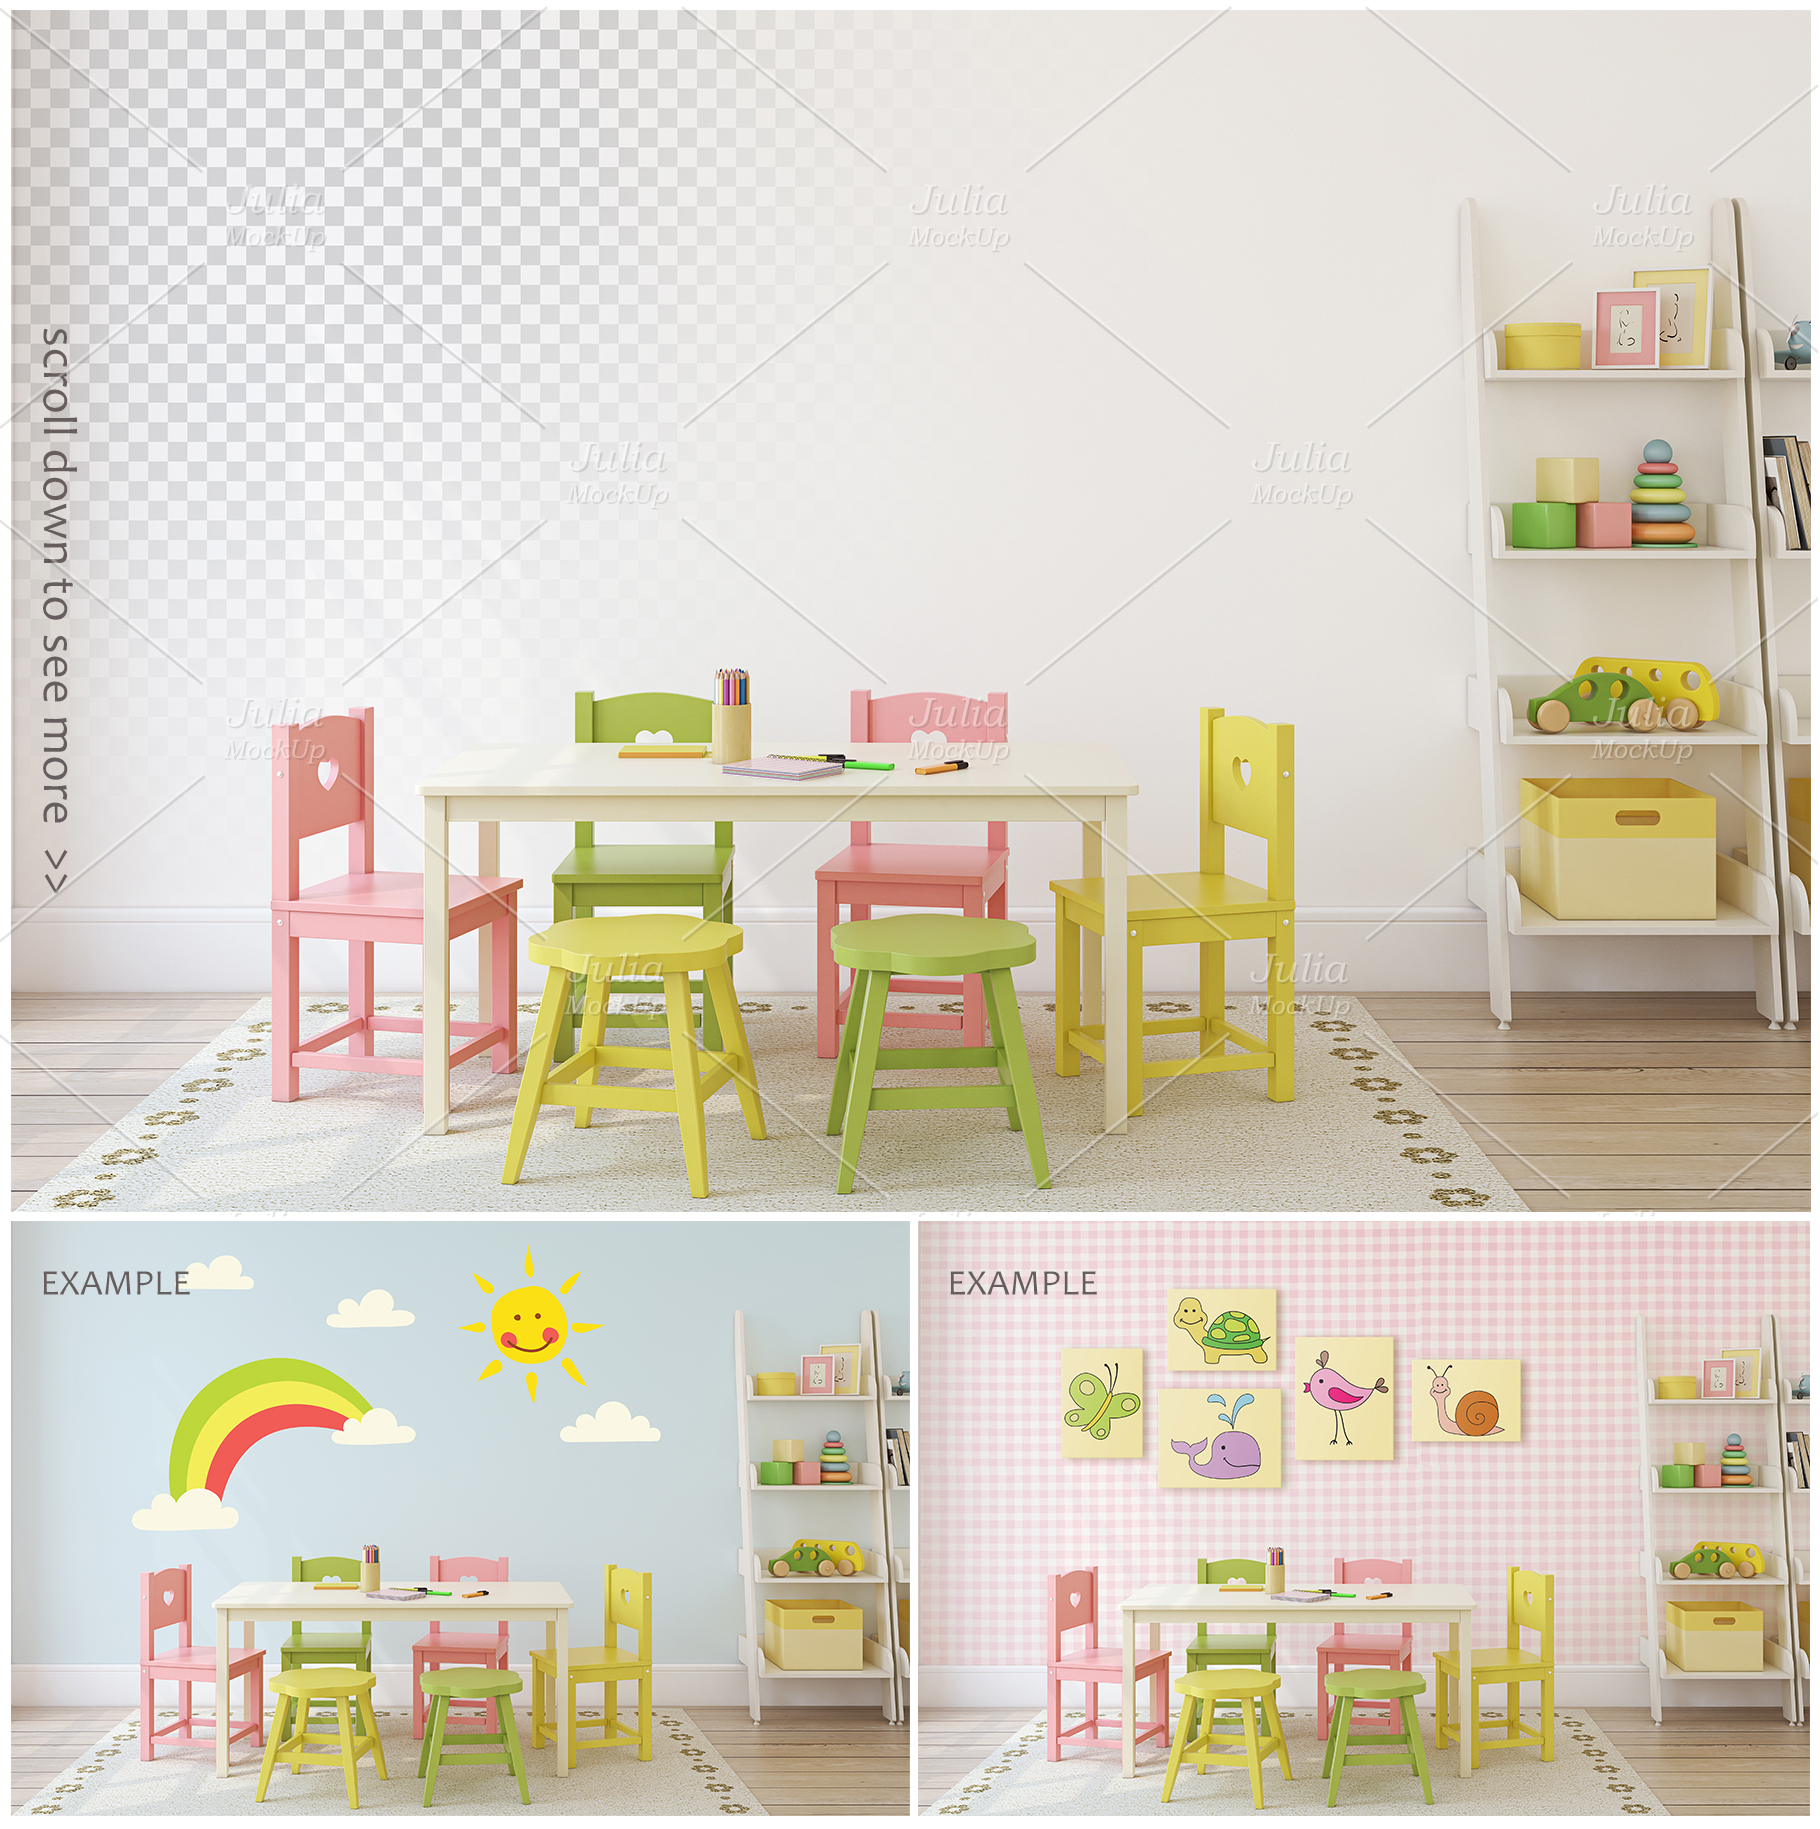 Kid's interiors. Wall&Frames Mockup. example image 6